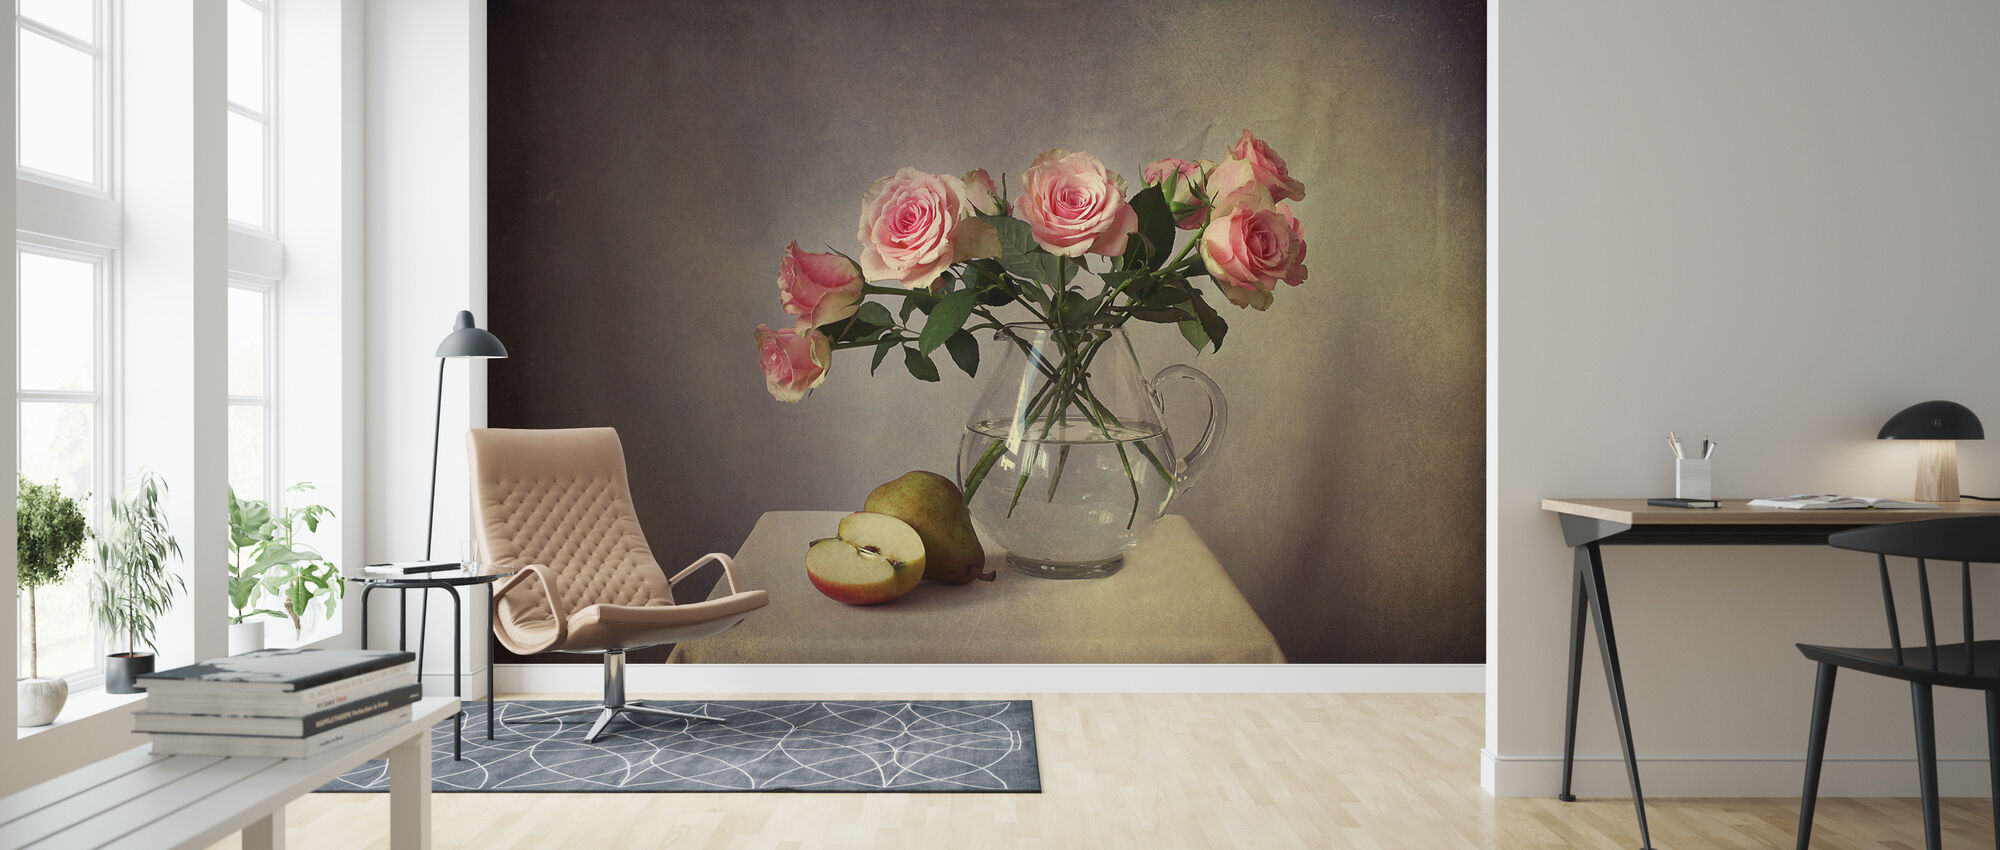 Still Life with Roses - Wallpaper - Living Room